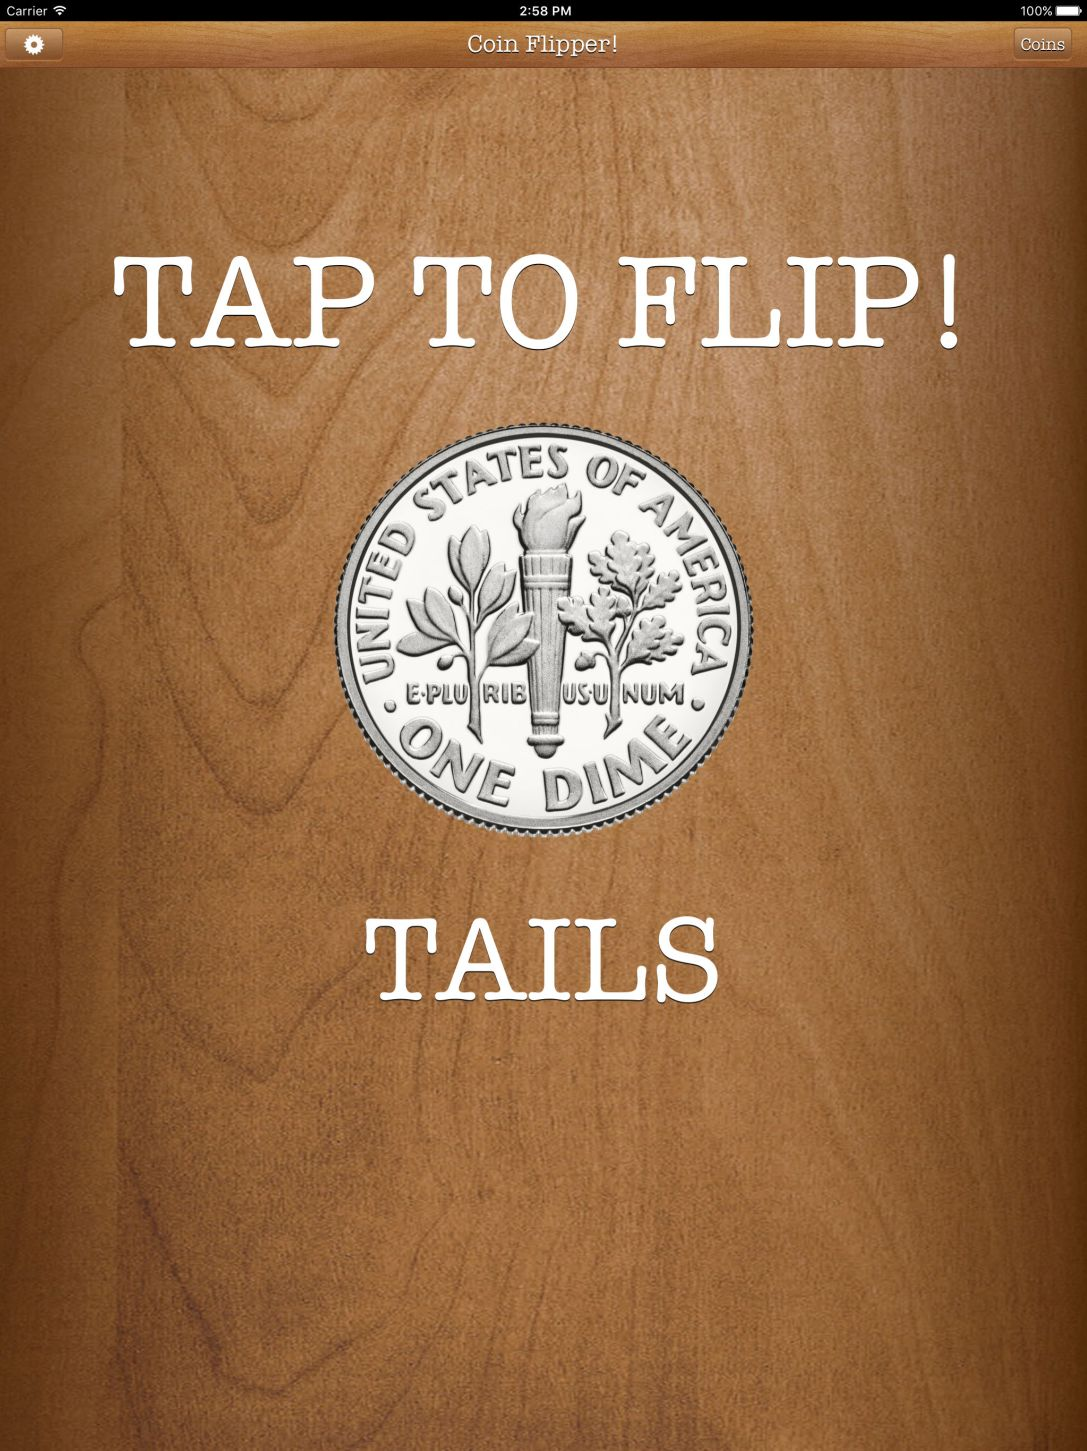 Flip a Coin App iPad Pro screenshot dime on tails.